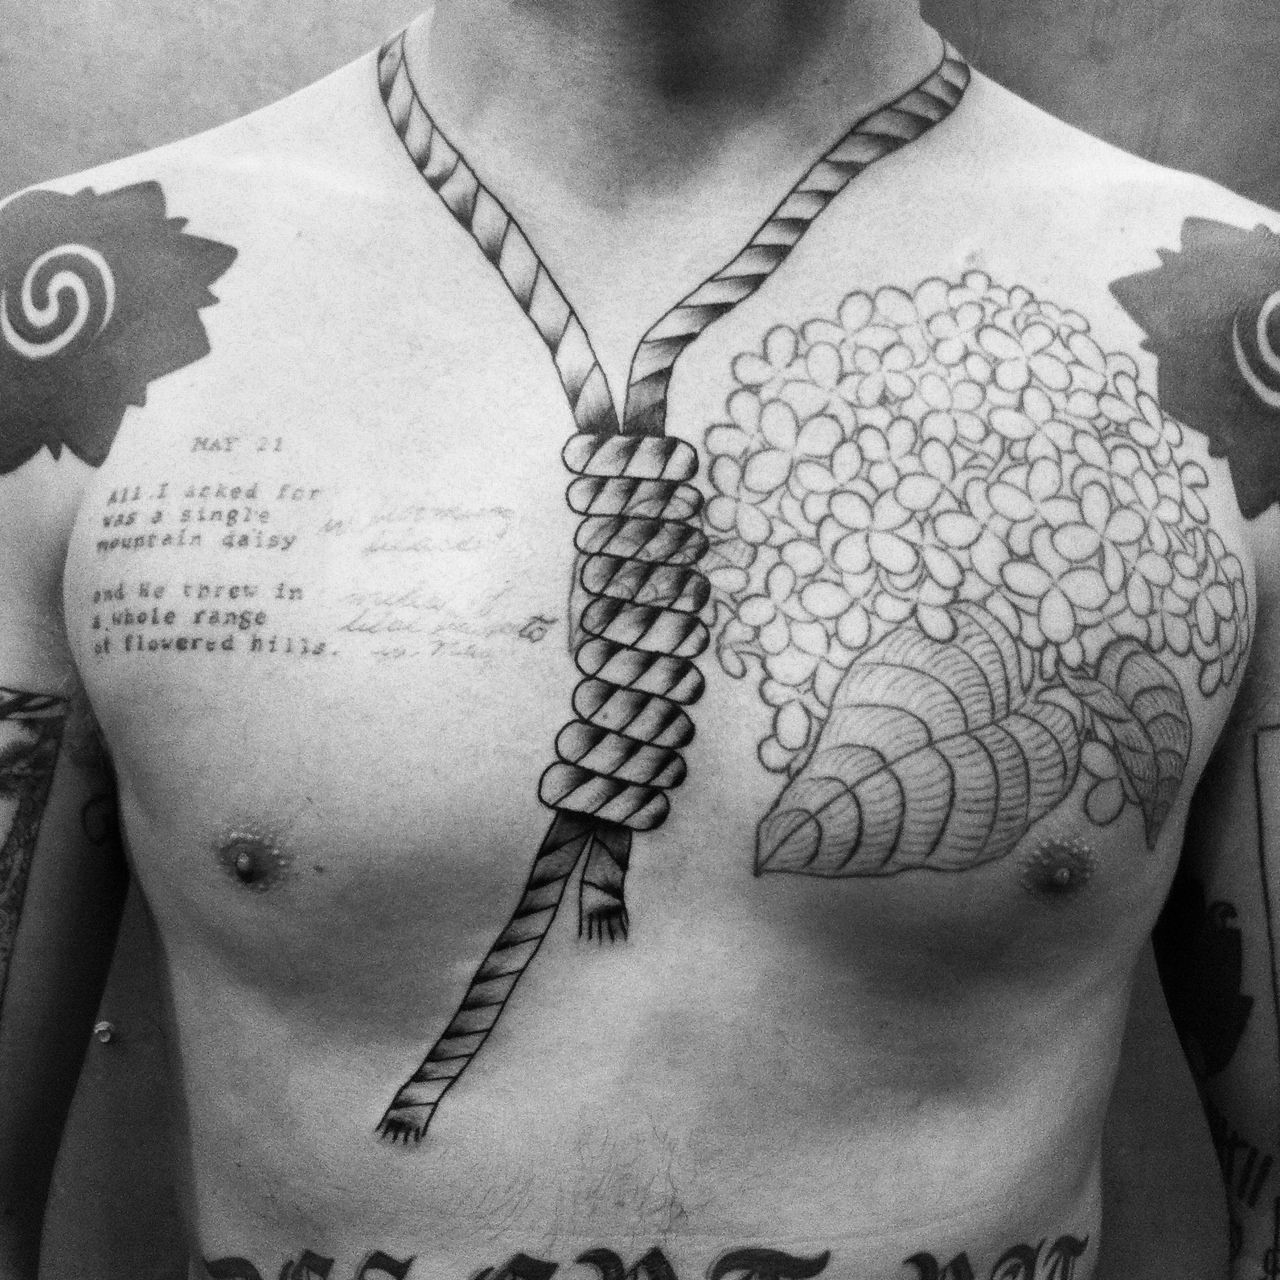 Pin By Julz On Things That Remind Me Of Dustin Unique Tattoos Prison Tattoos Inspirational Tattoos